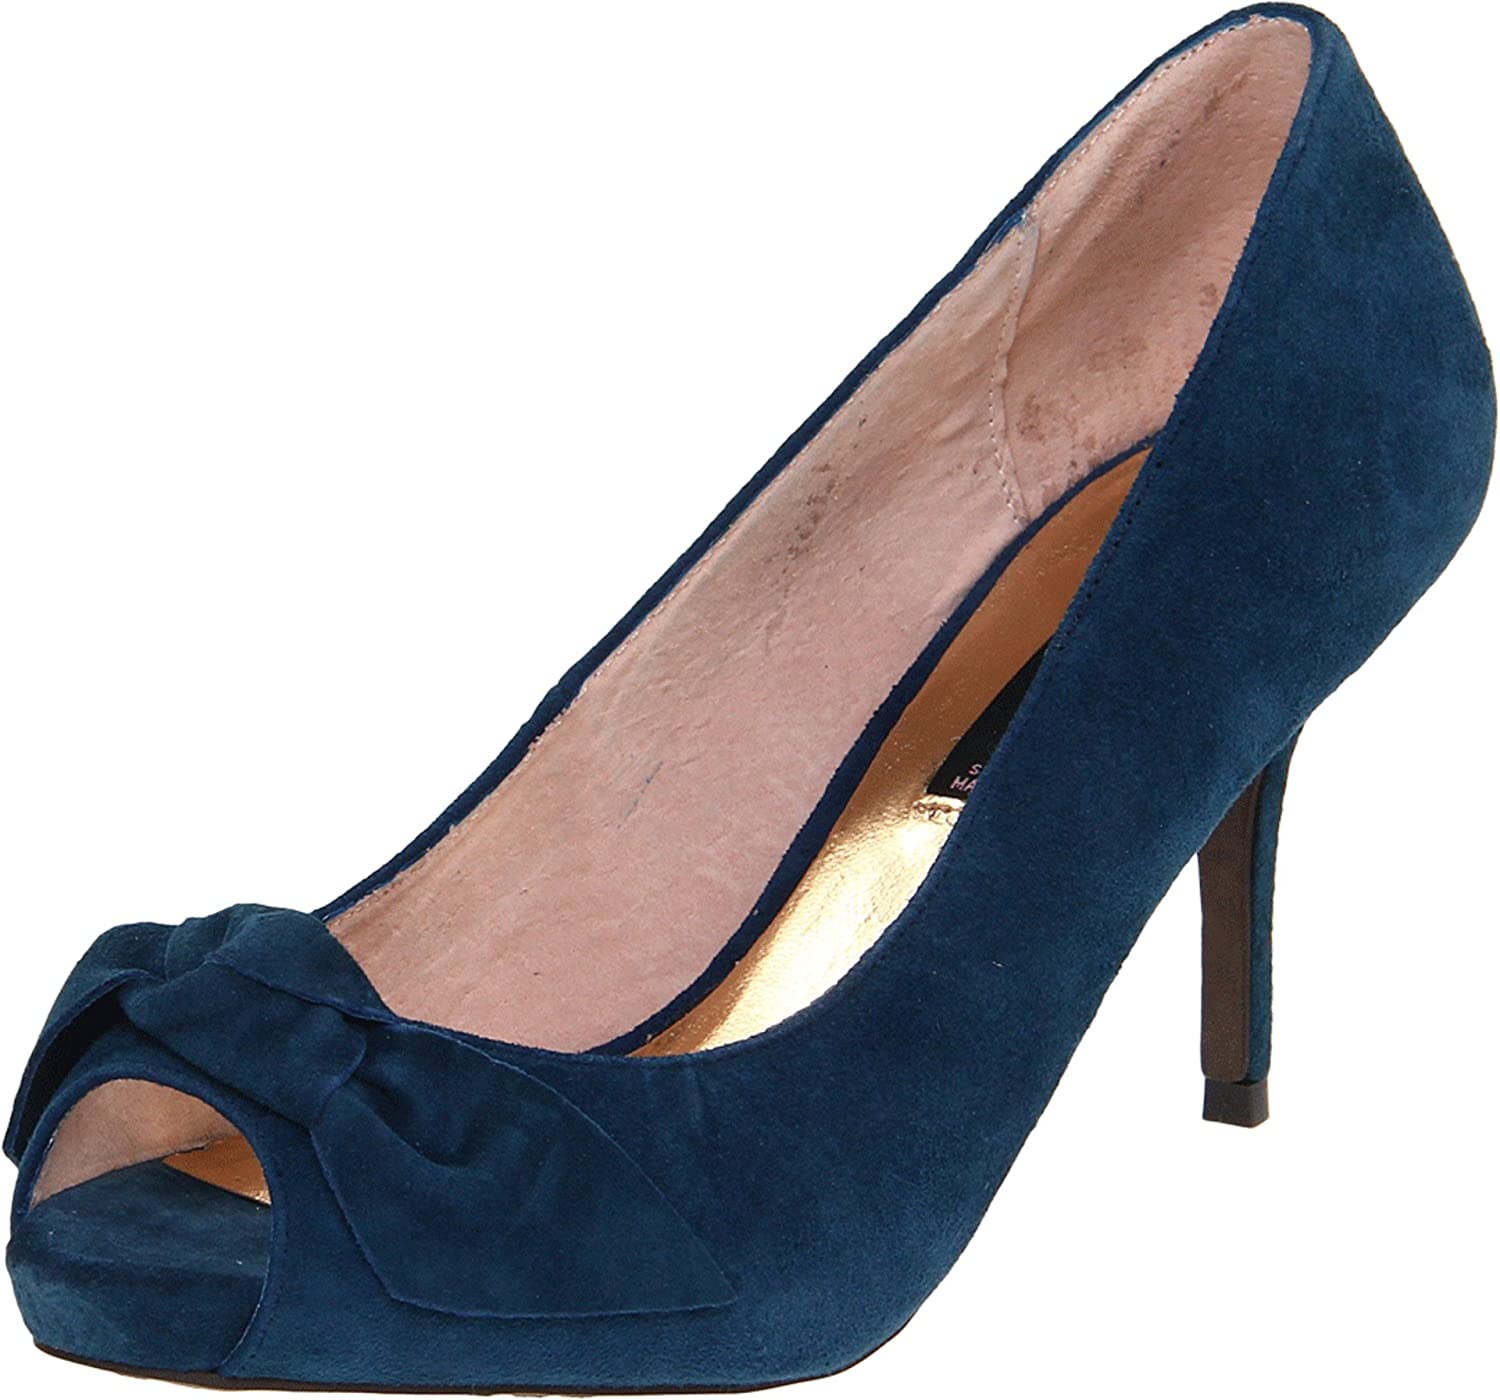 e7ed67dc9587 STEVEN by Steve Madden Women s Mala Open-Toe Pump Navy Suede 8 B(M) US  Buy  Online at Low Prices in India - Amazon.in